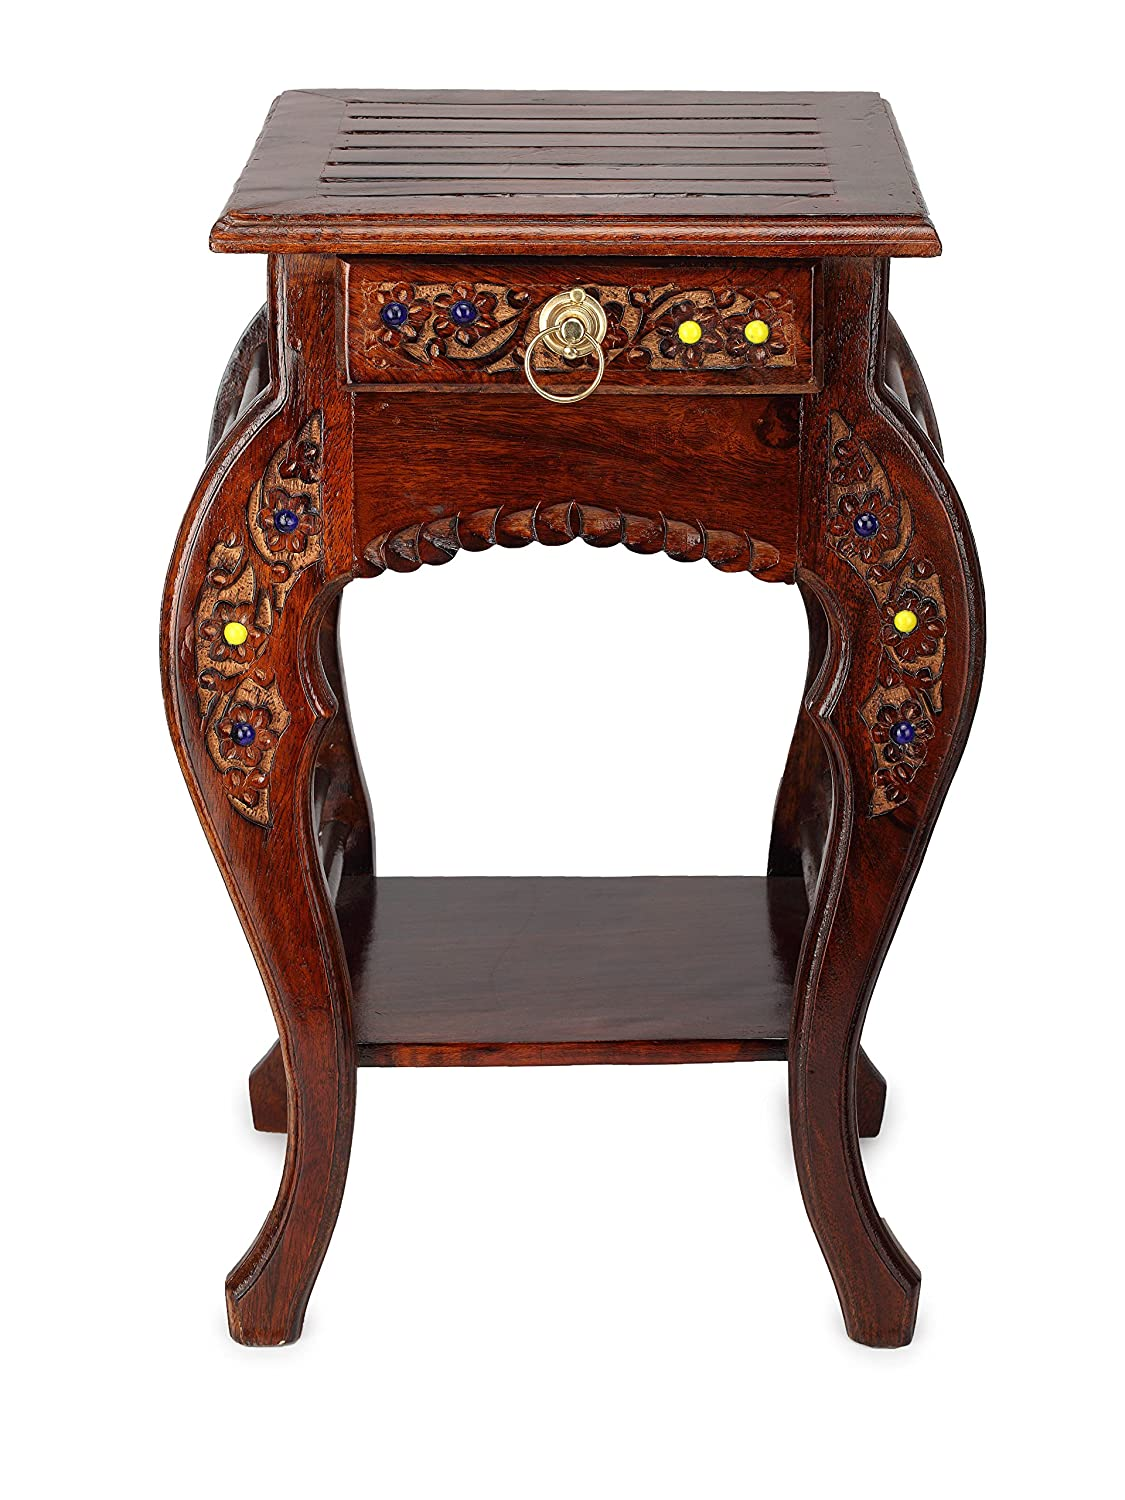 Onlineshoppee wooden hand carved side table stool antique for Where can i buy vintage furniture